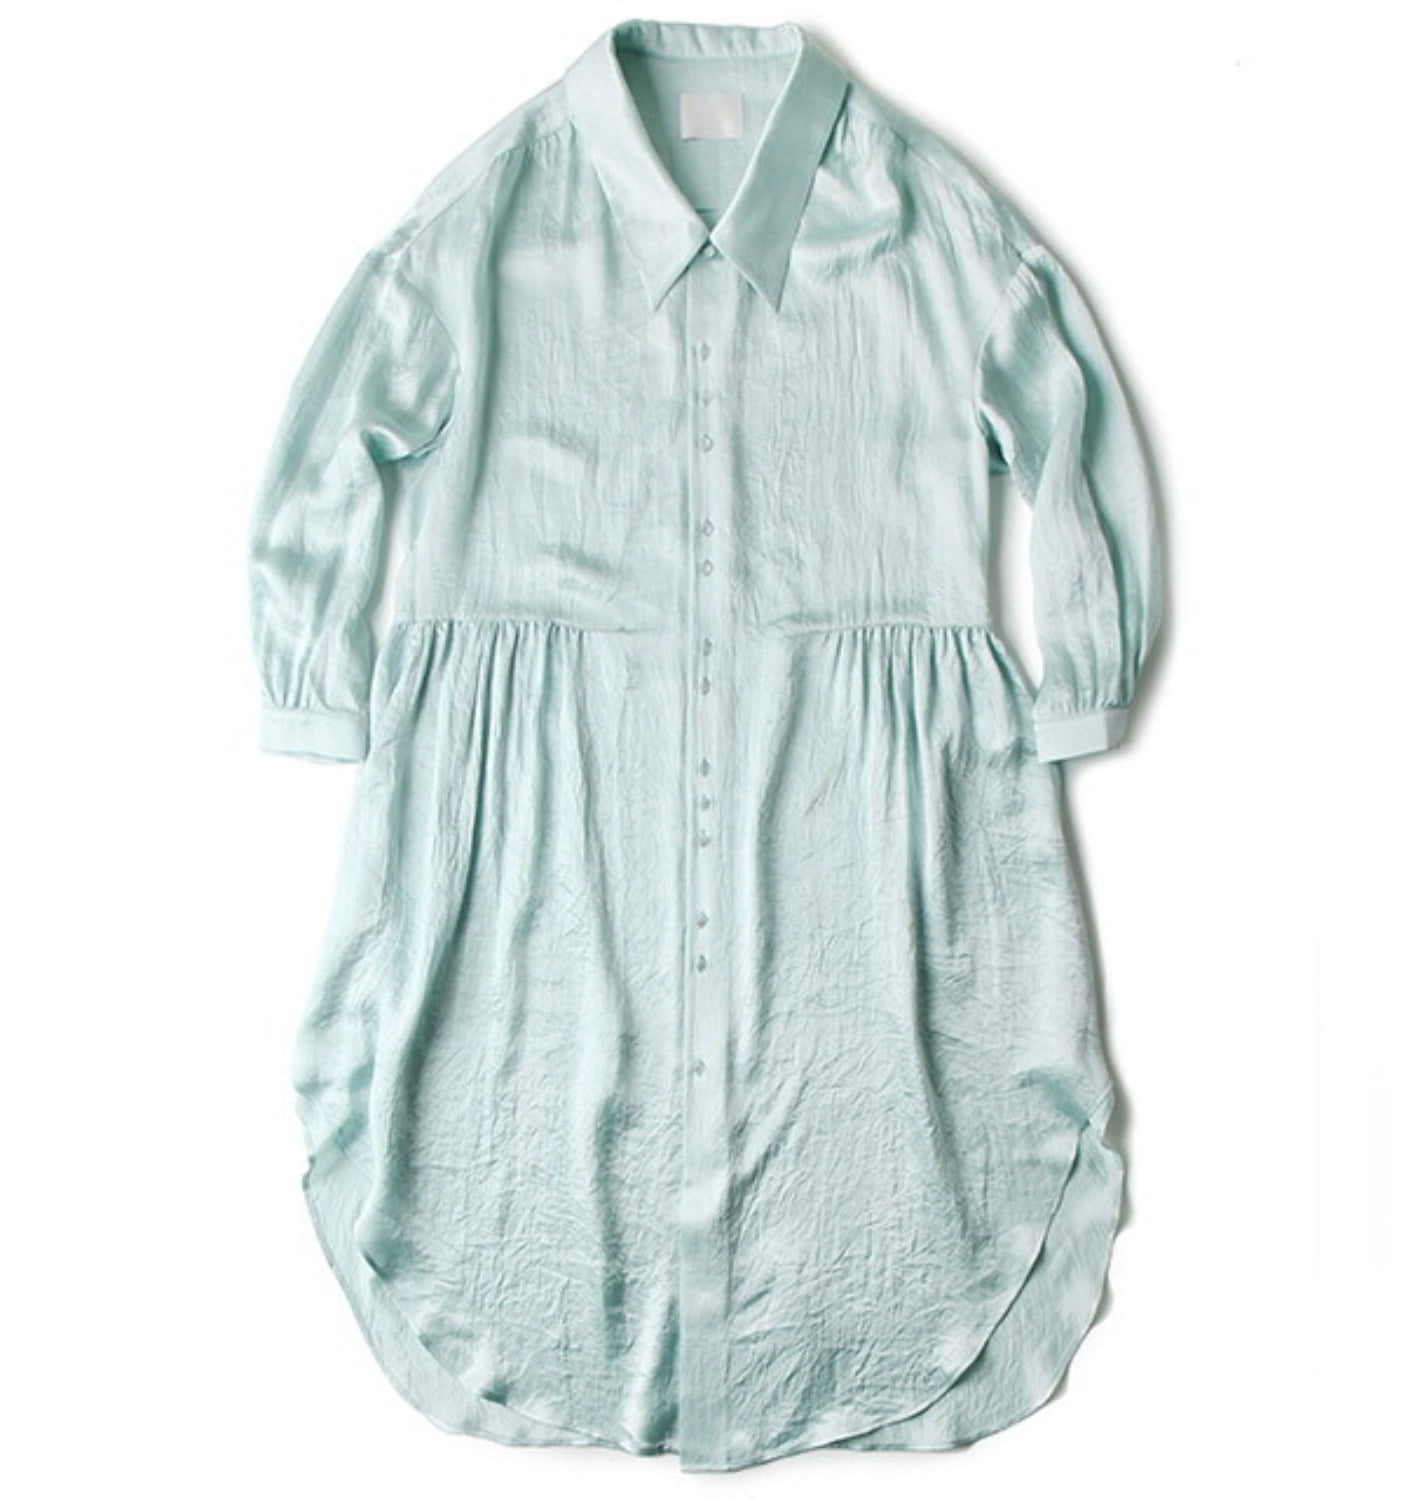 SHIRT DRESS MINT SATIN(DR01)